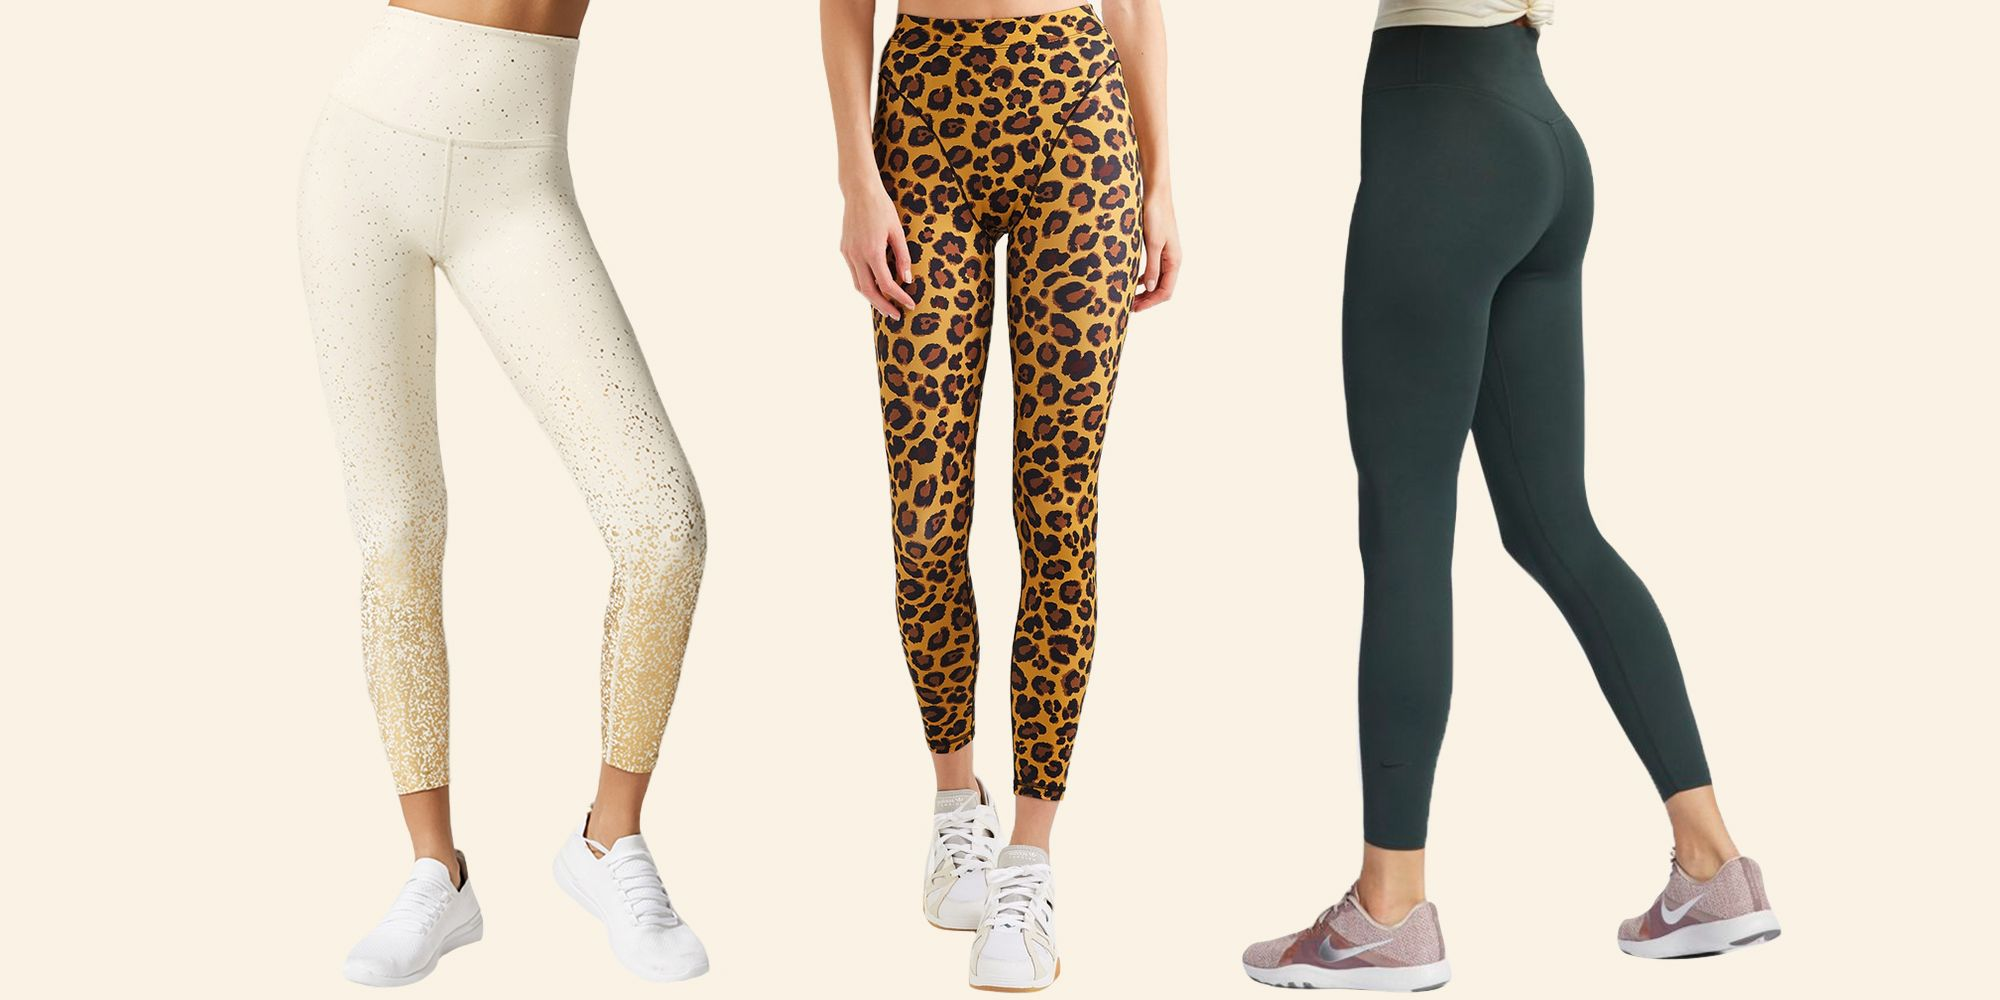 5a15a955d5 16 Pairs of Leggings You Can Wear to a Real or Fake Workout